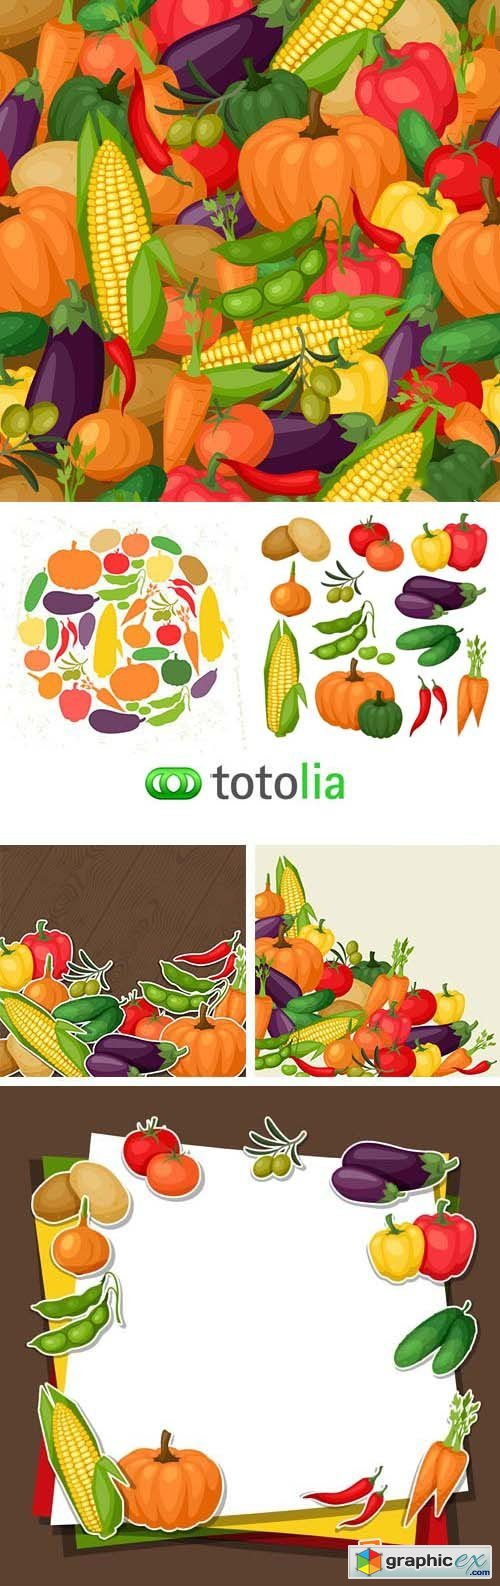 Stylized Vegetables - 25xEPS